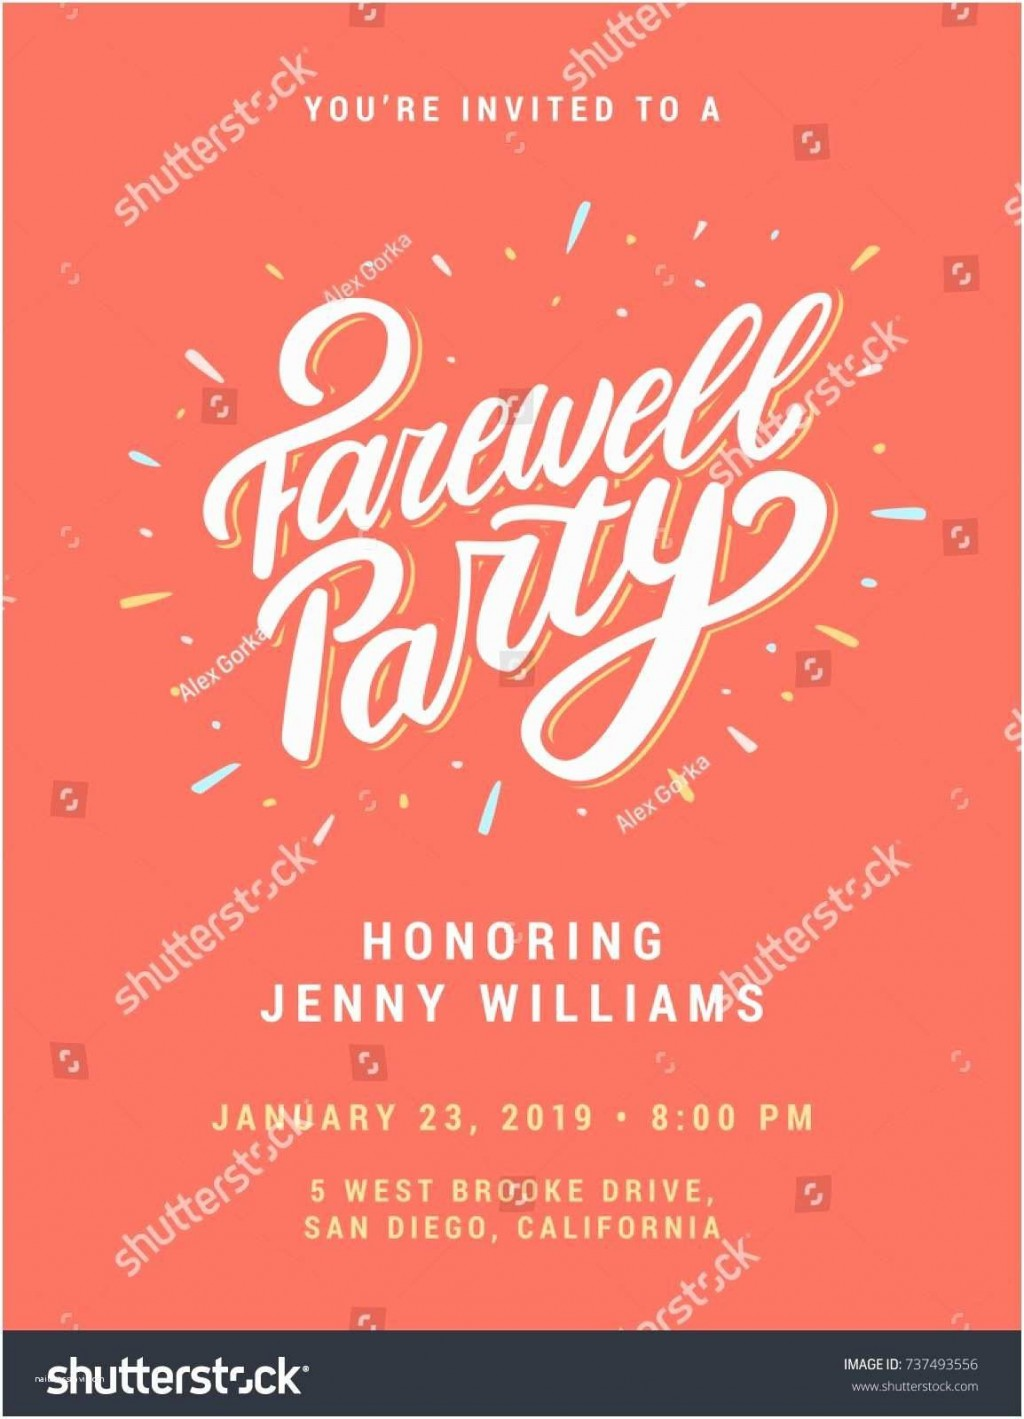 007 Beautiful Farewell Party Invitation Template Free Sample  Email Printable WordLarge